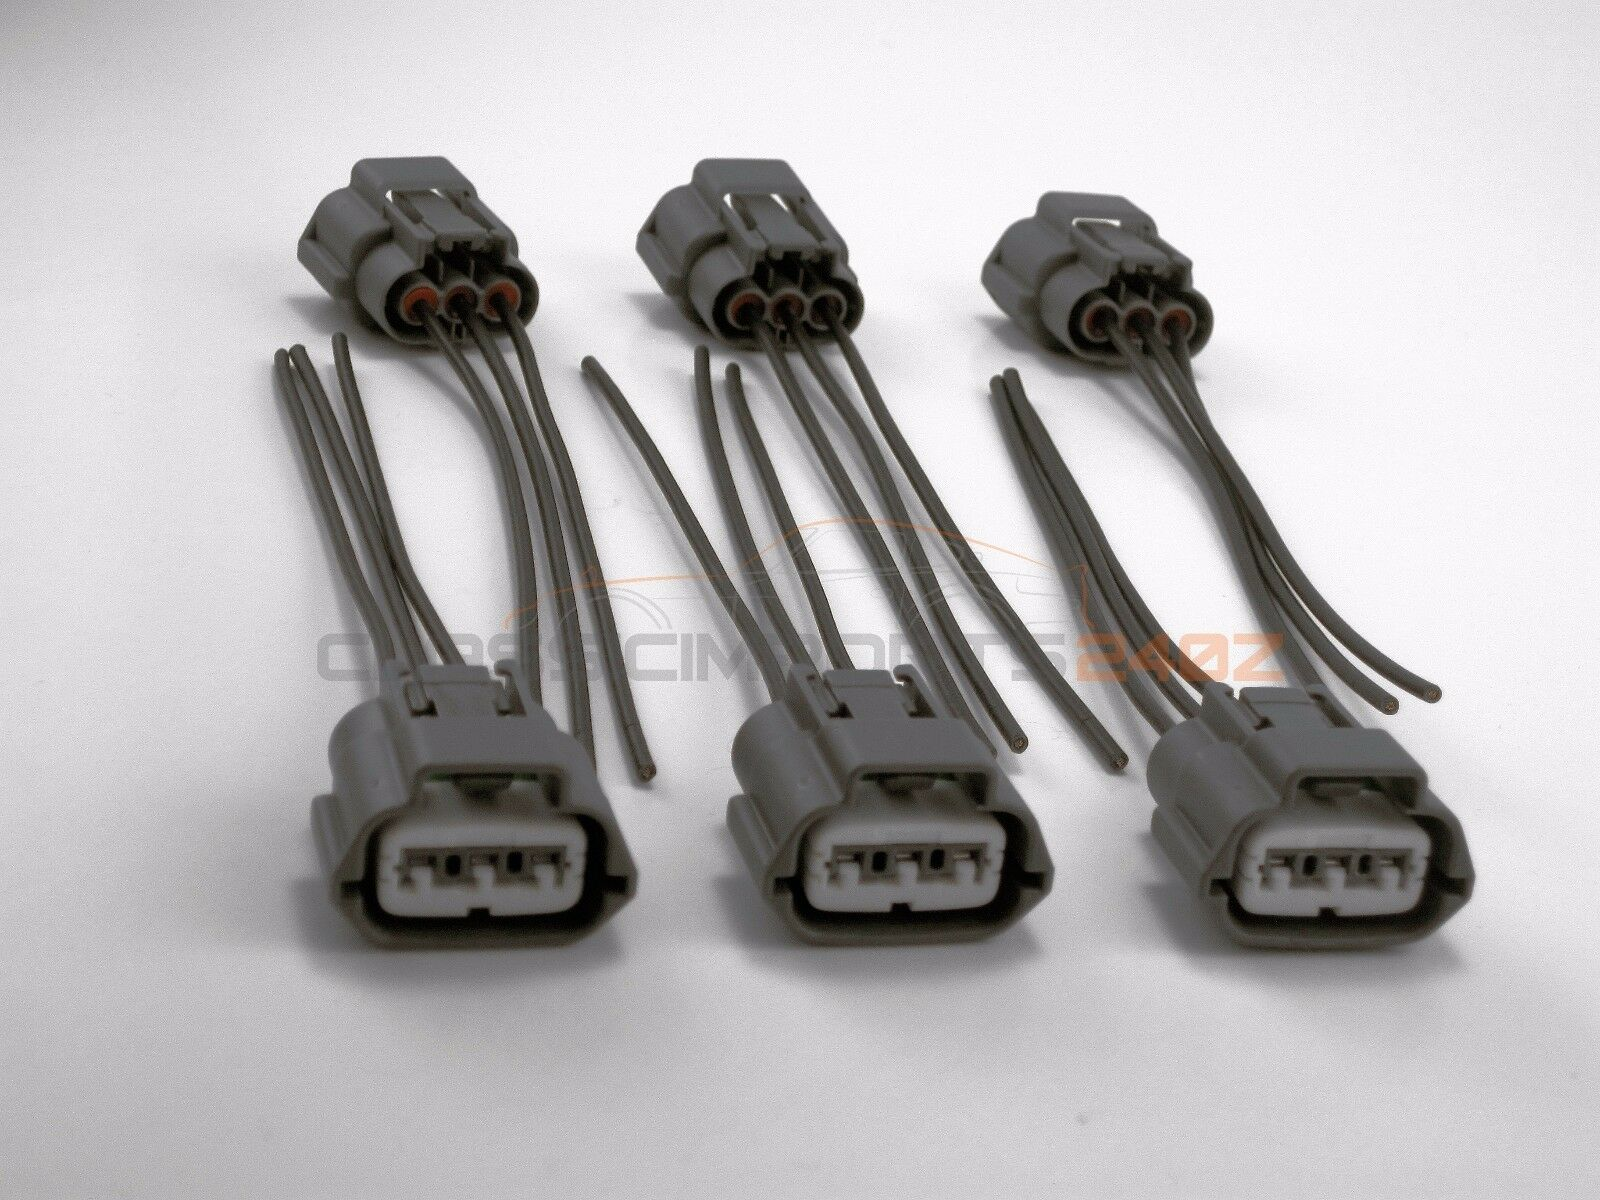 2000 Nissan Maxima Ignition Coil Wiring Harness : Ignition coil pack connector plug for nissan z